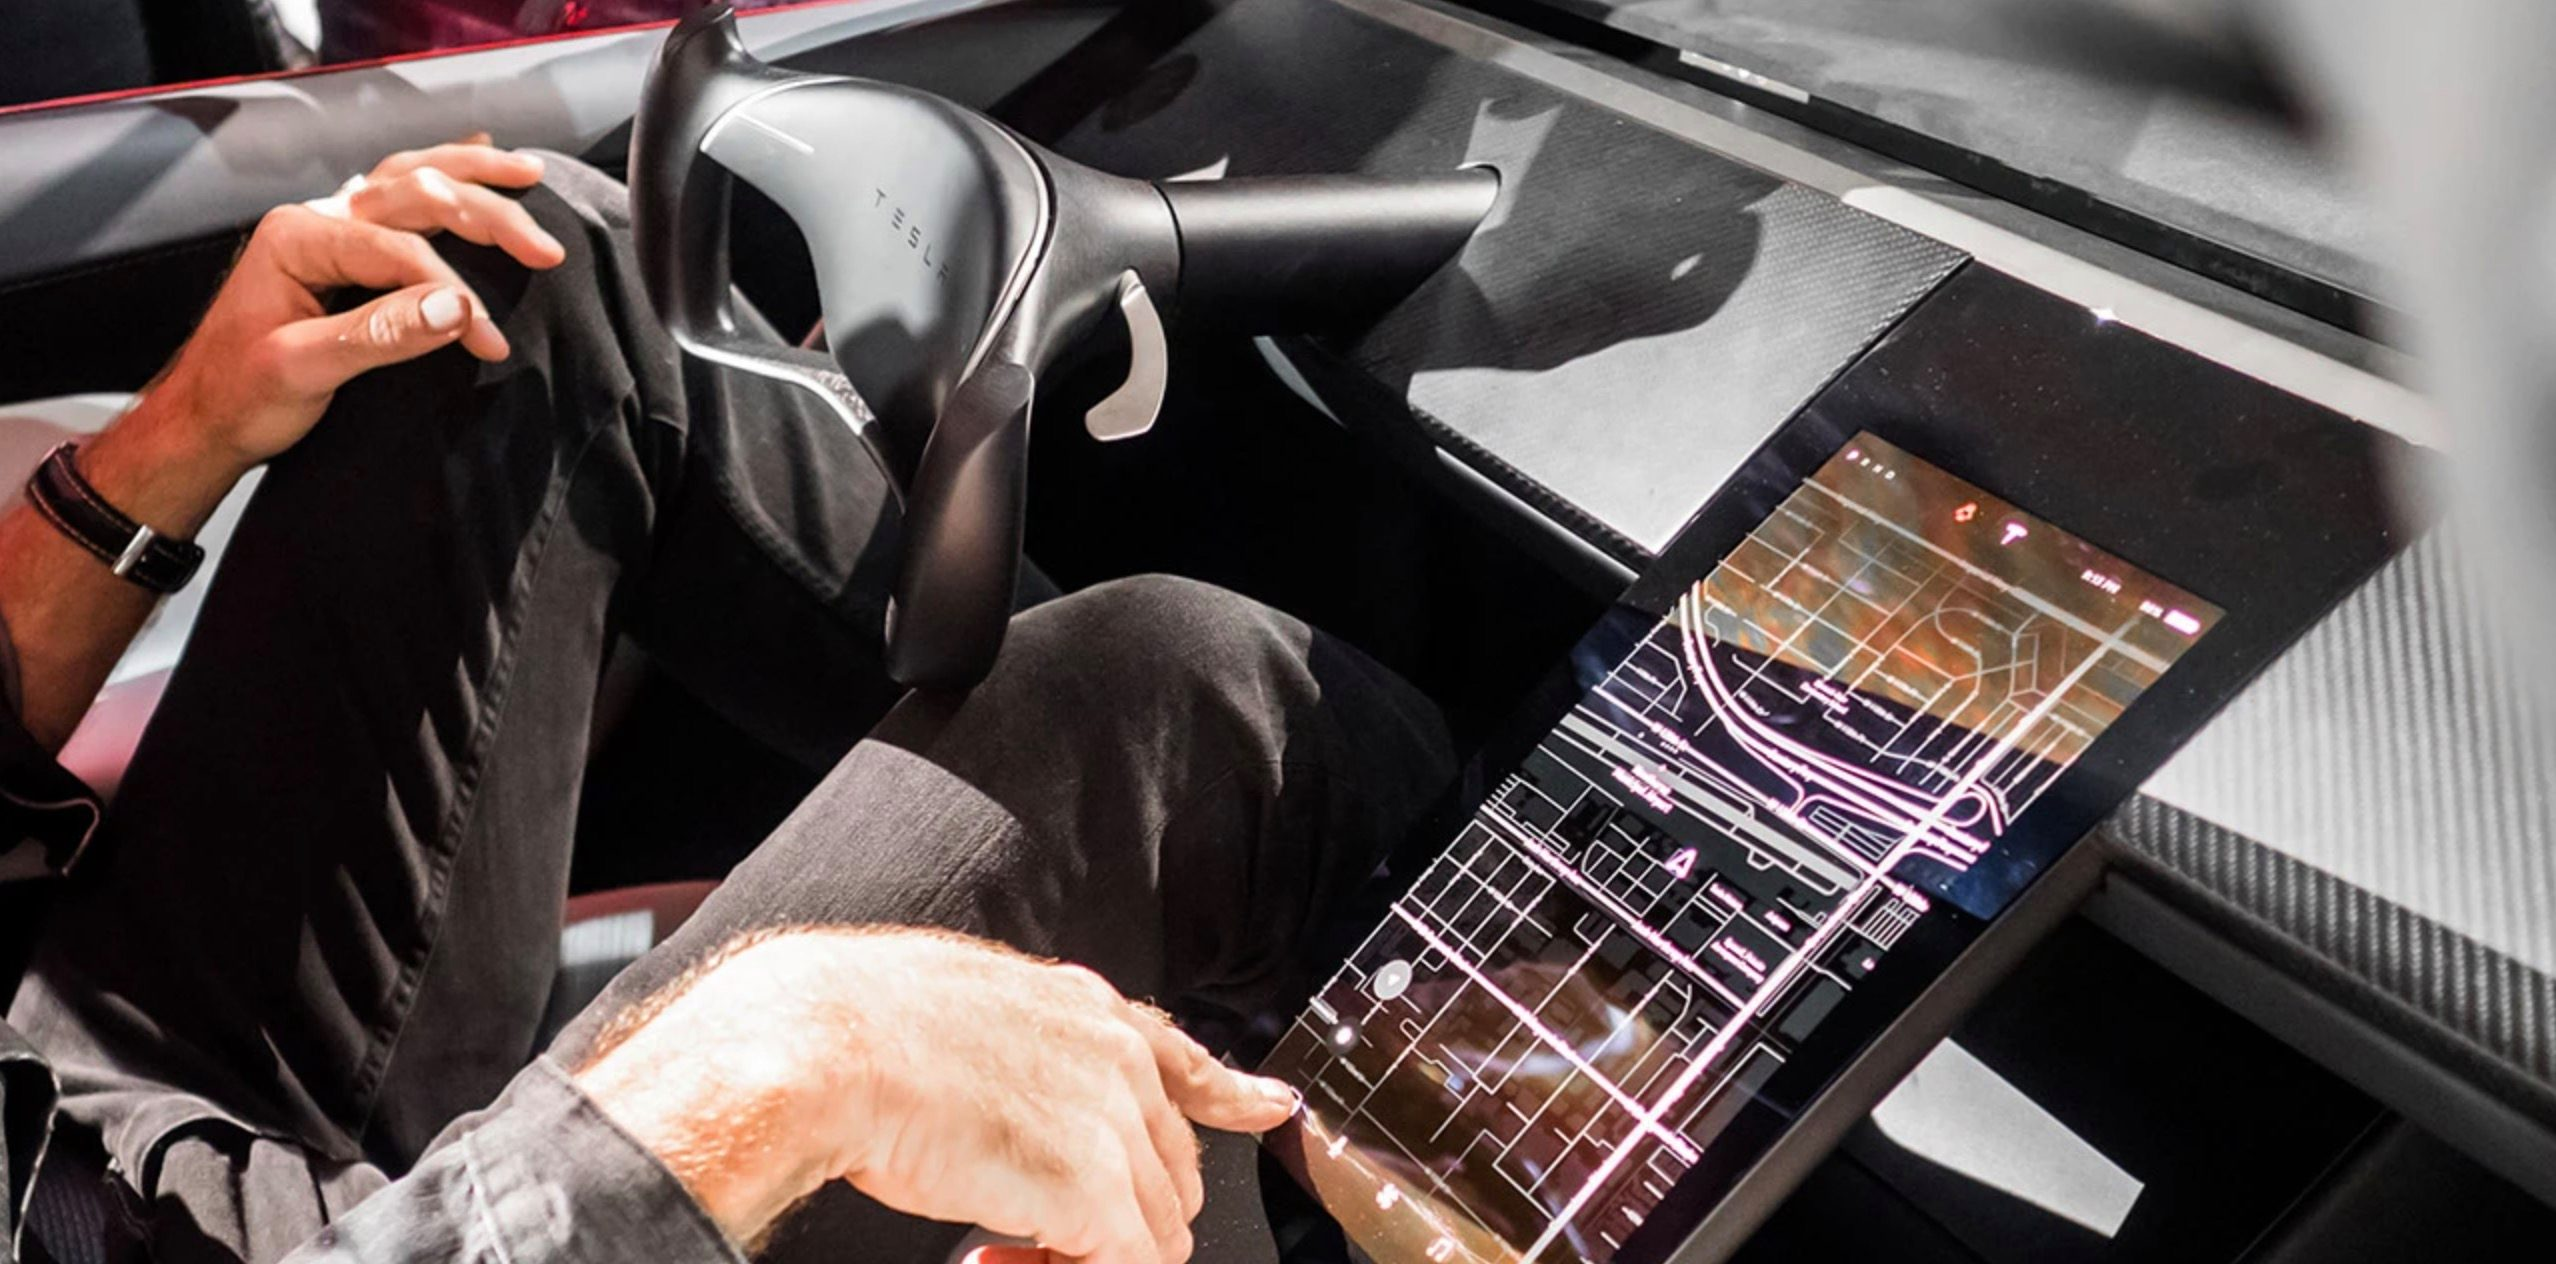 Tesla 'V11' software update: Elon Musk teases 'Fire' update with new amazing features and more